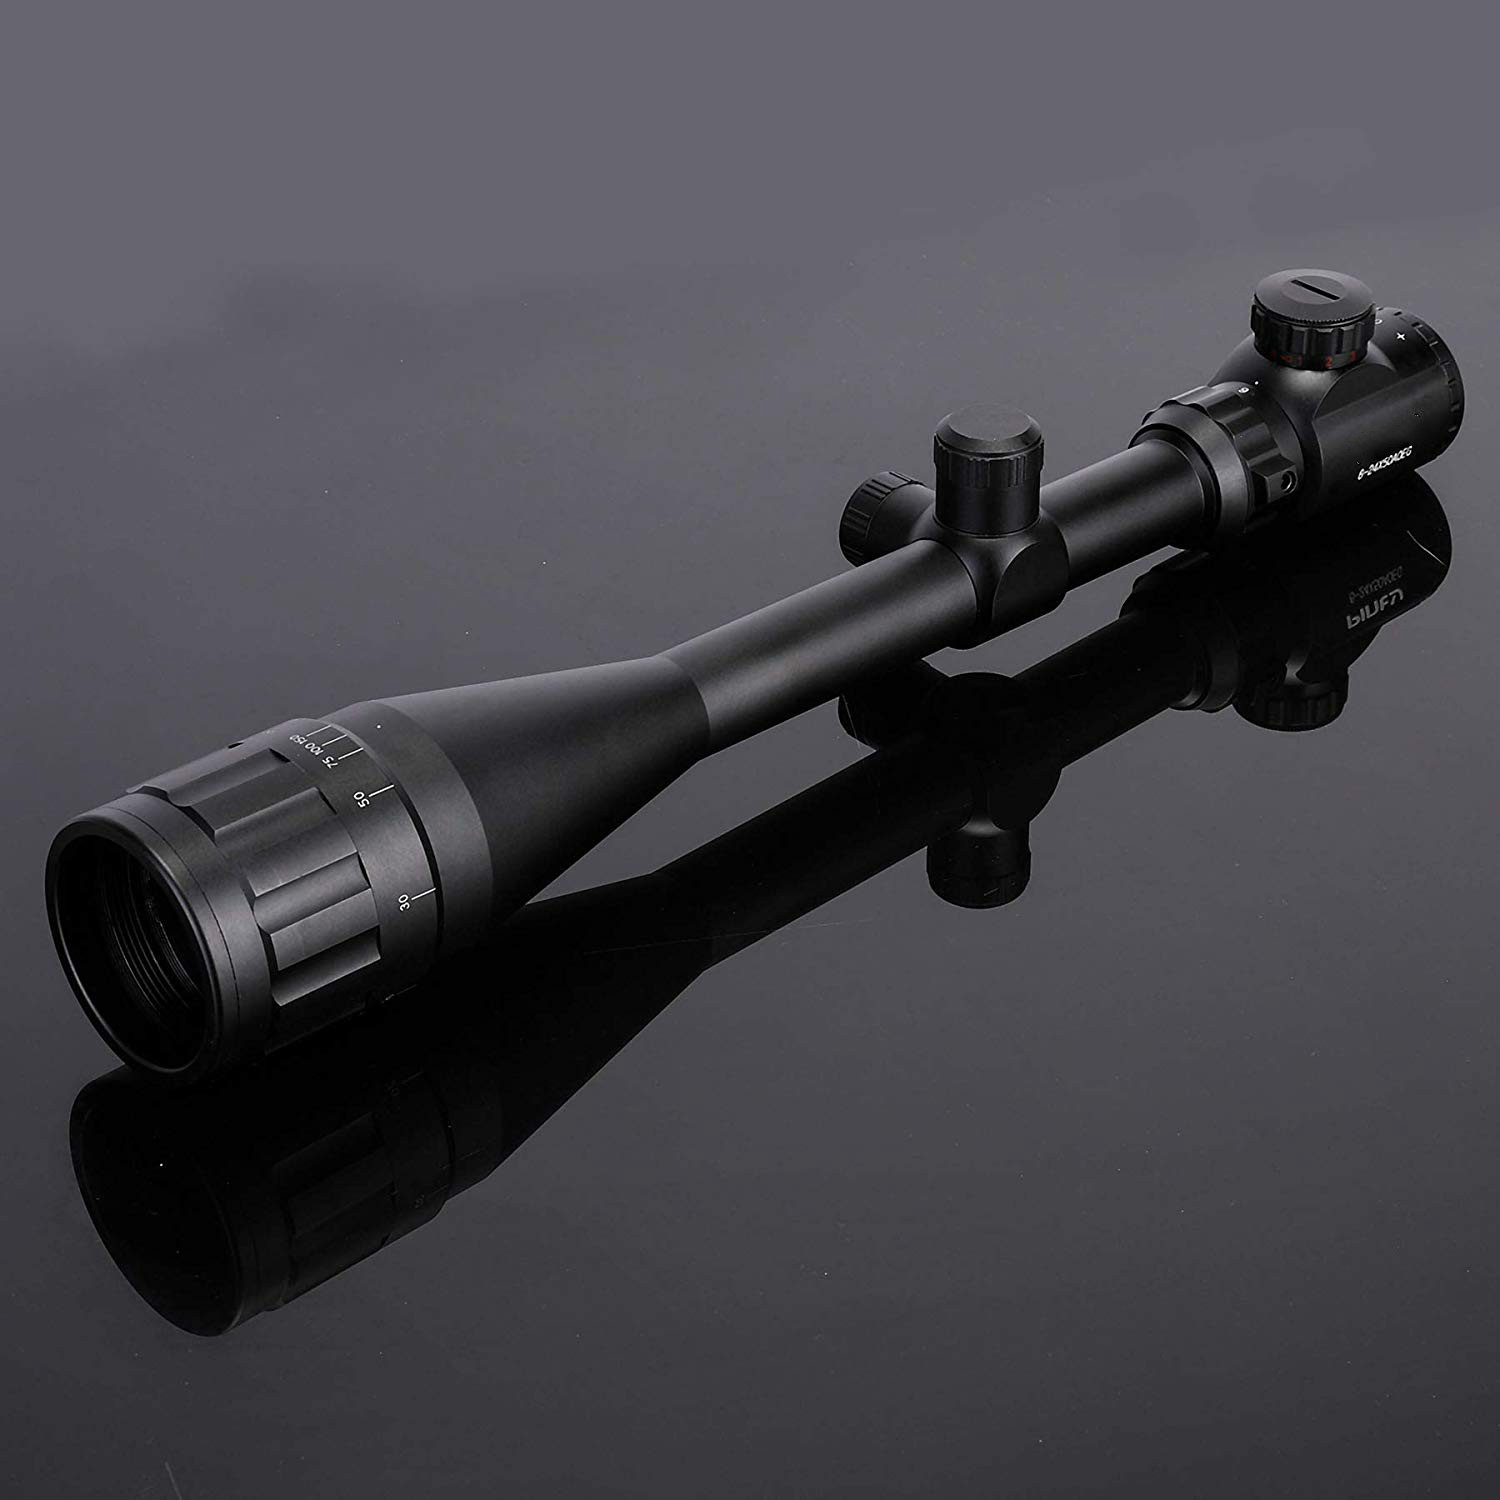 Brand new 6 24x50 AOE scope Riflescope Hunting Optics Scopes Adjustable Red Green Dot Illuminated Crosshair Sight Reticle Scope